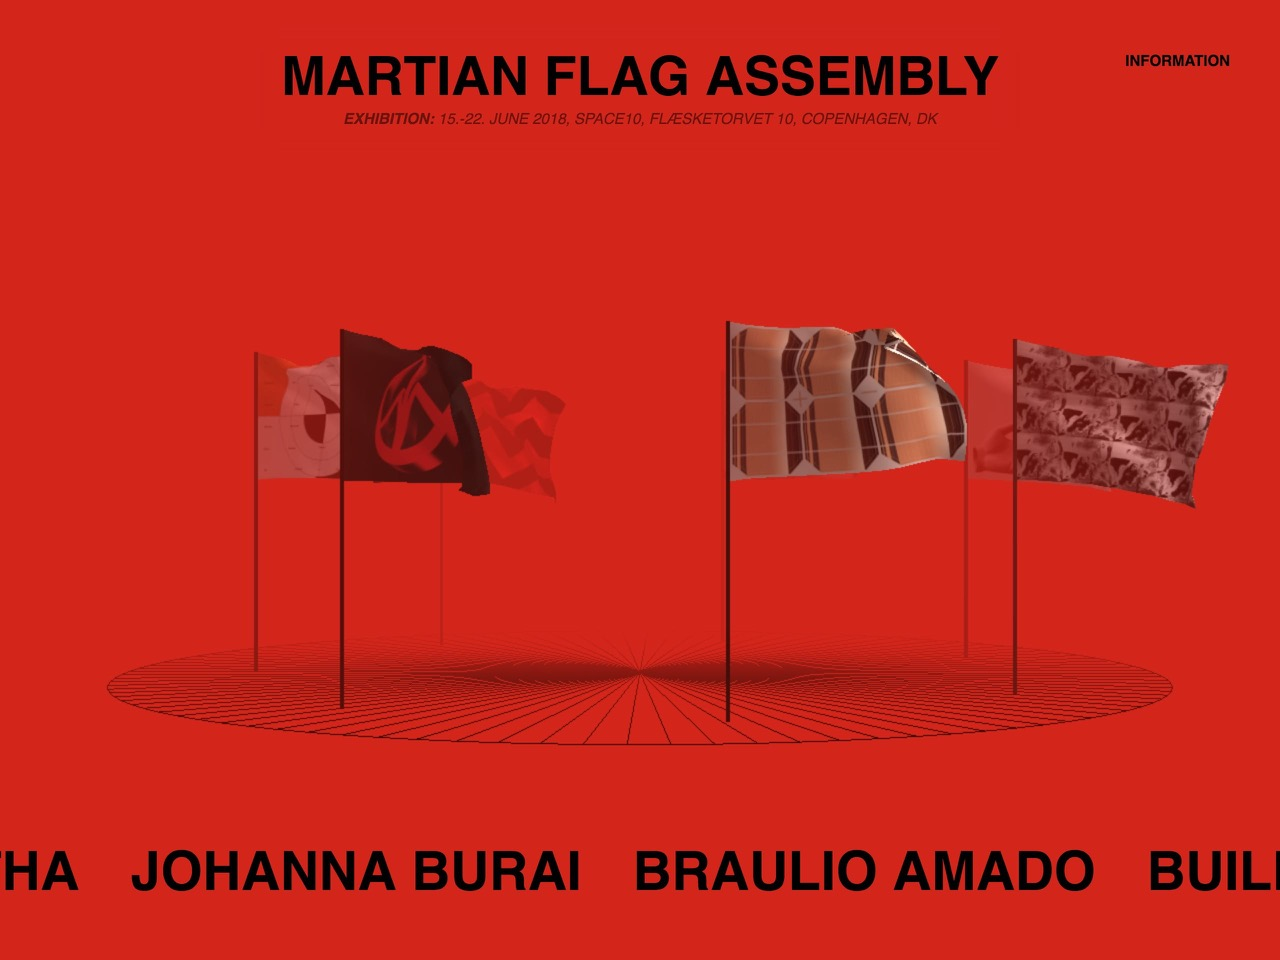 Martian flag assembly